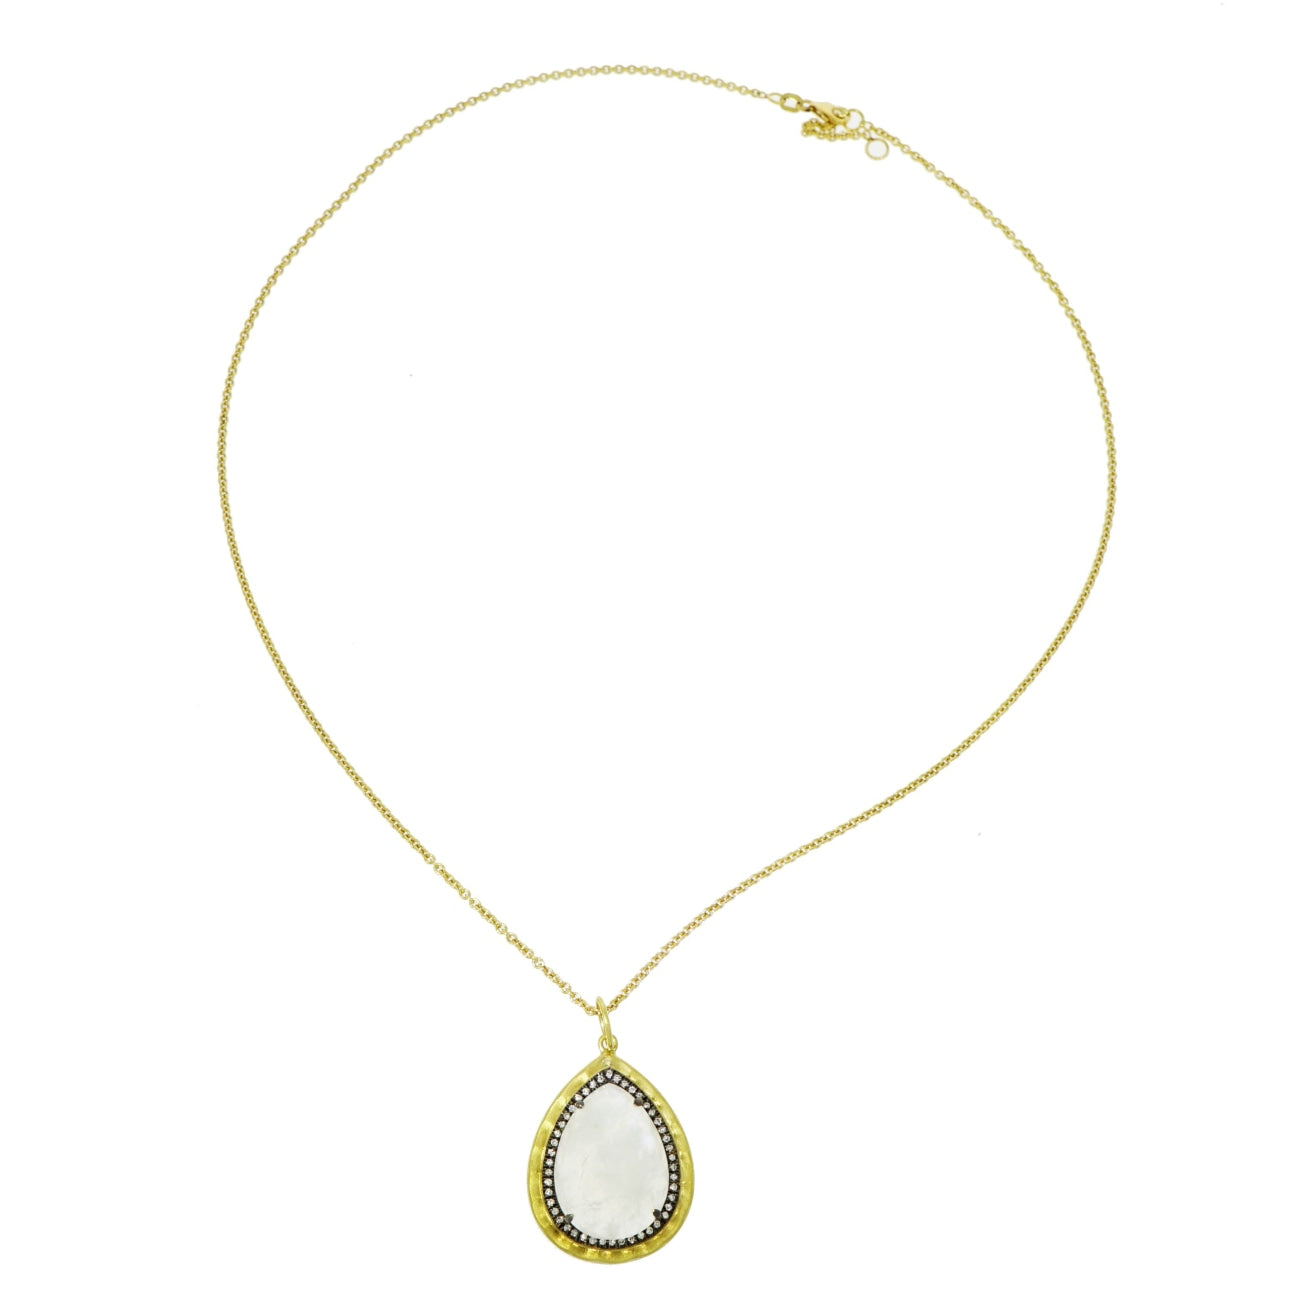 Lauren K Jewelry - Pear shaped Moonstone & Diamond Pendant | Manfredi Jewels